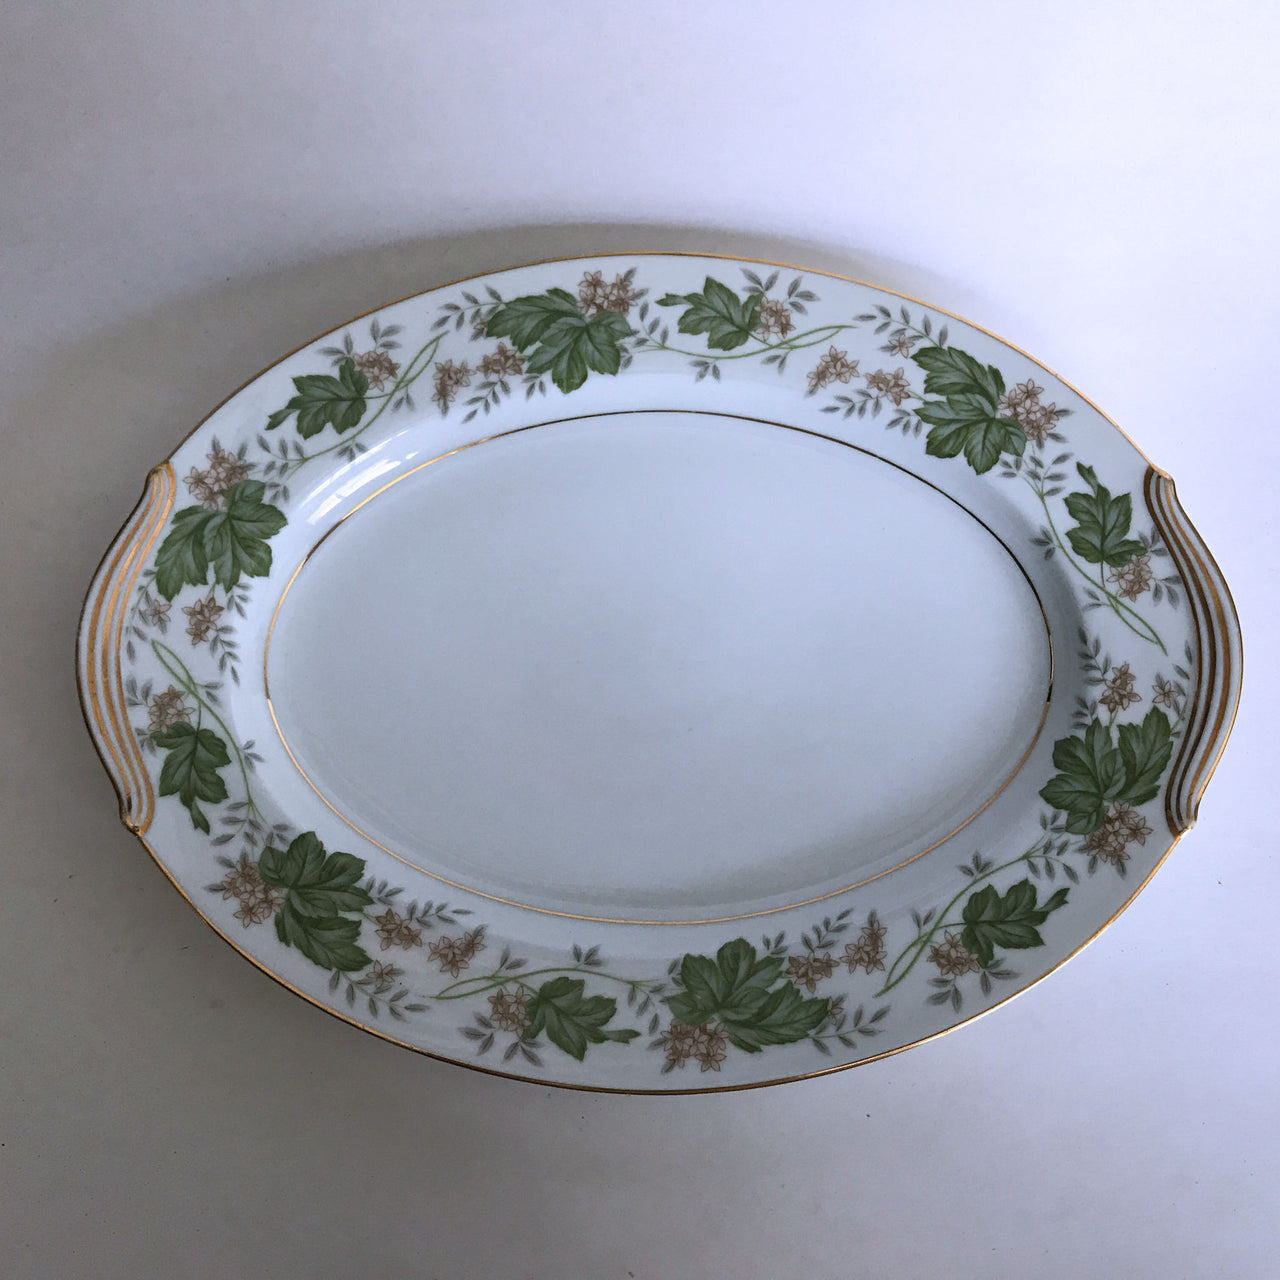 Vintage Noritake Daphne 5312 Platter Tan Flowers Green Silver Leaves Gold